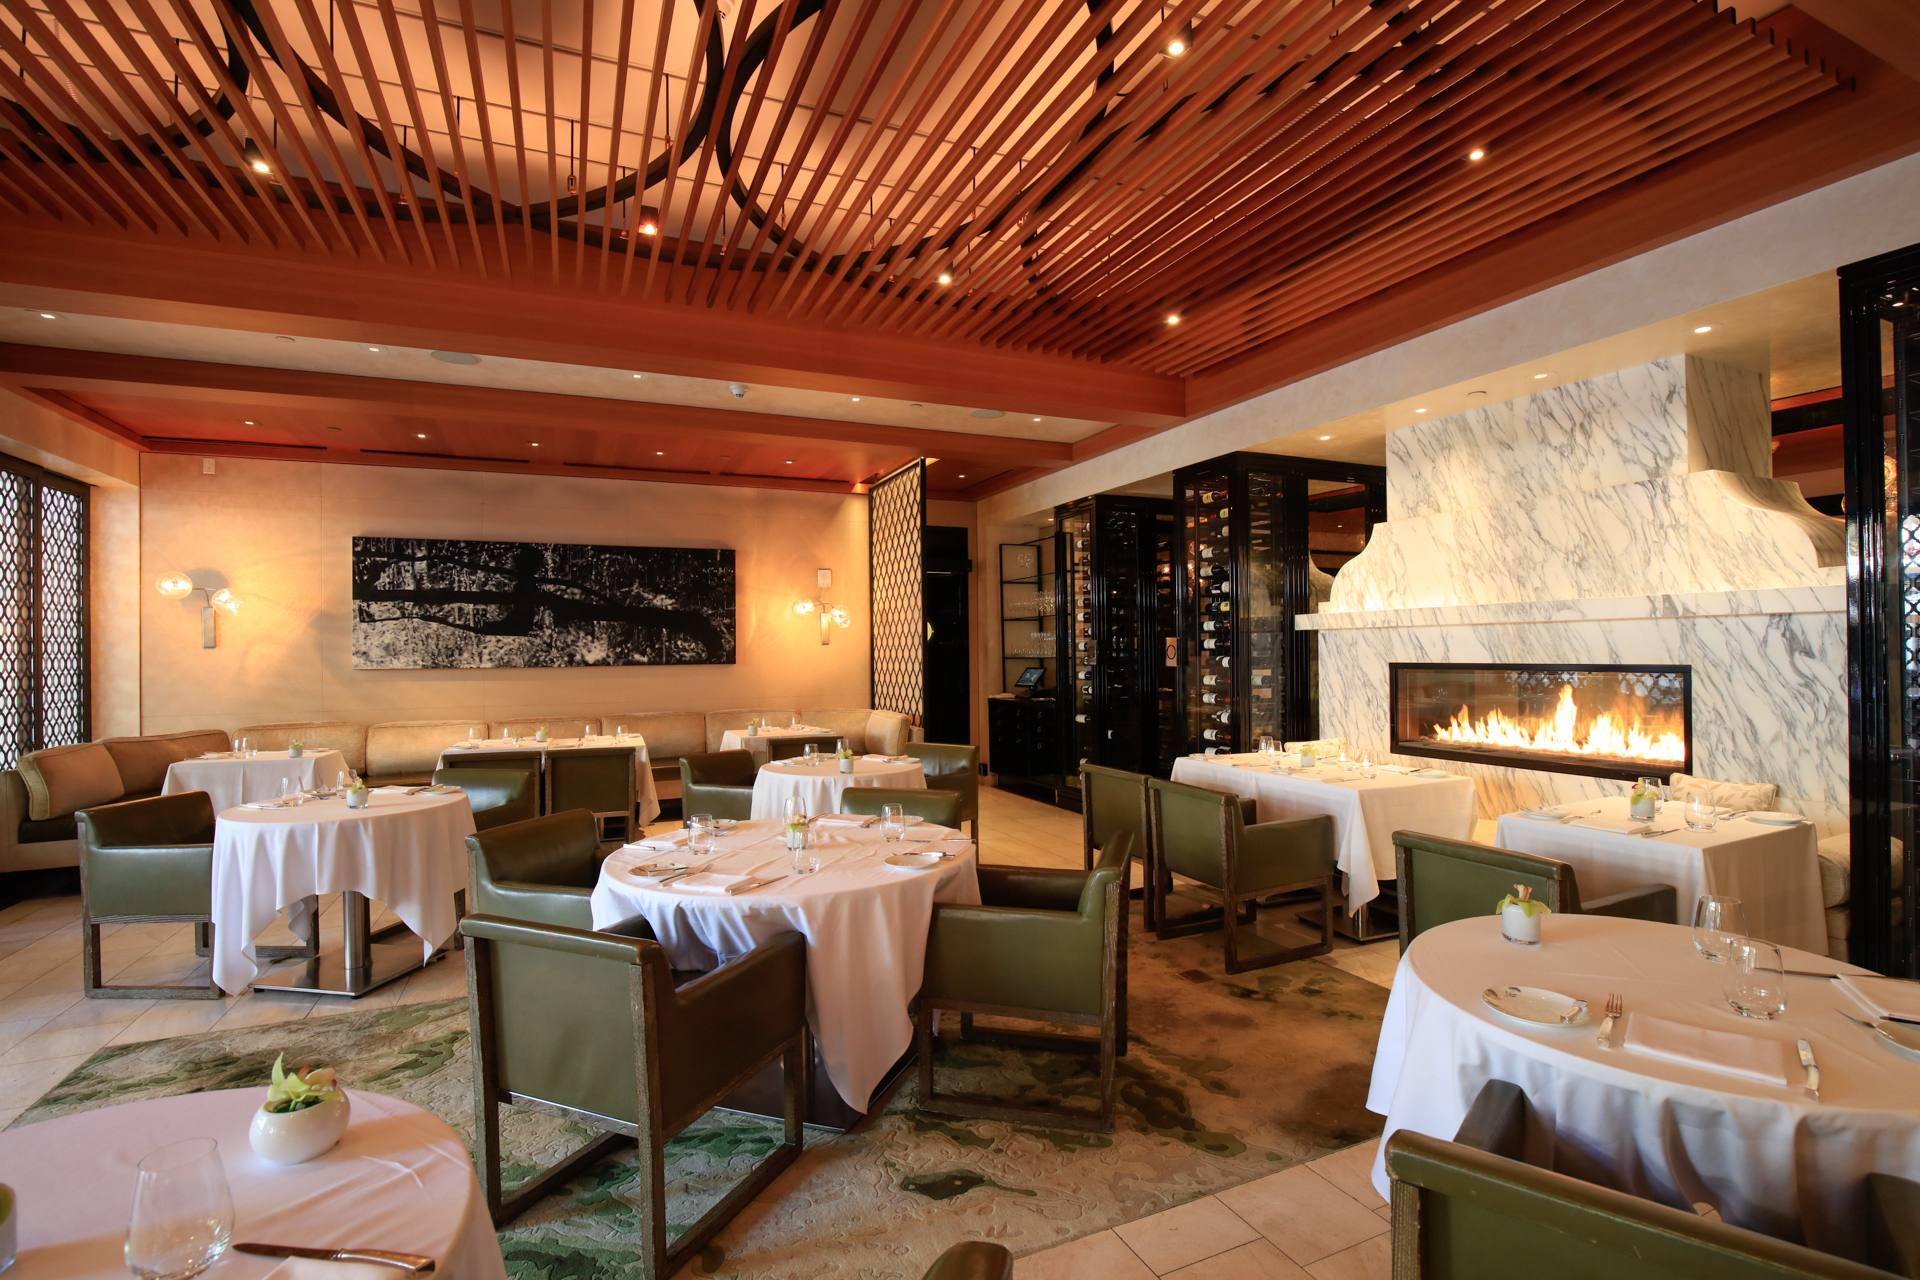 Wolfgang Puck at Hotel Bel-Air dining room and fireplace